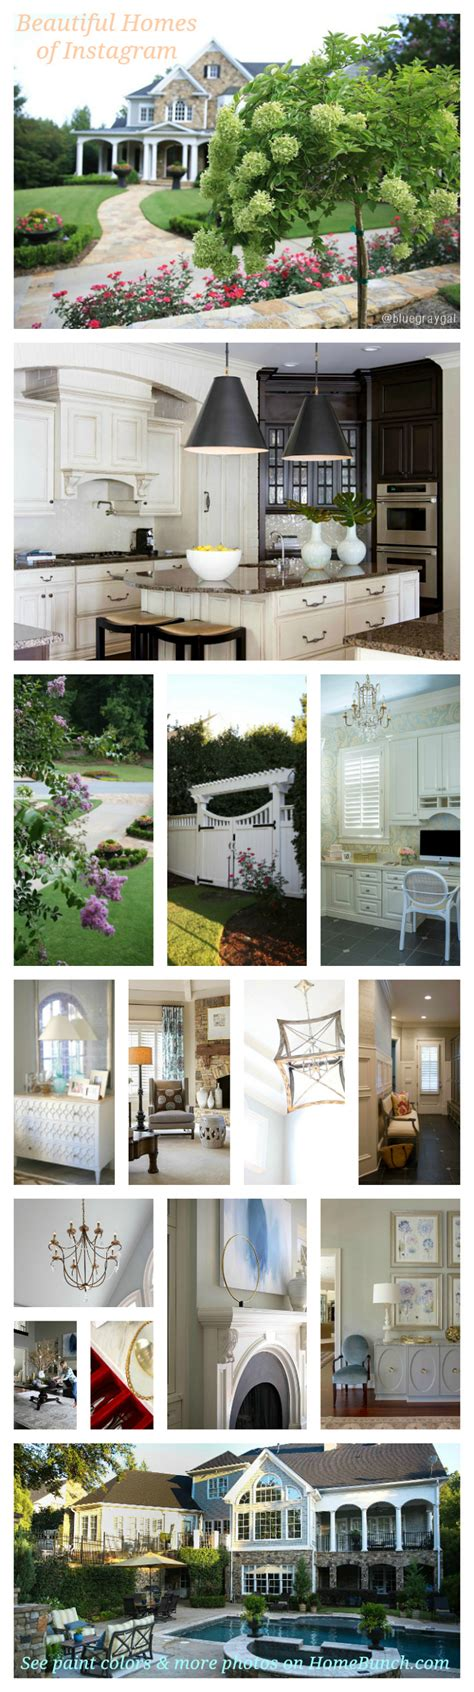 house beautiful instagram beautiful homes of instagram home bunch interior